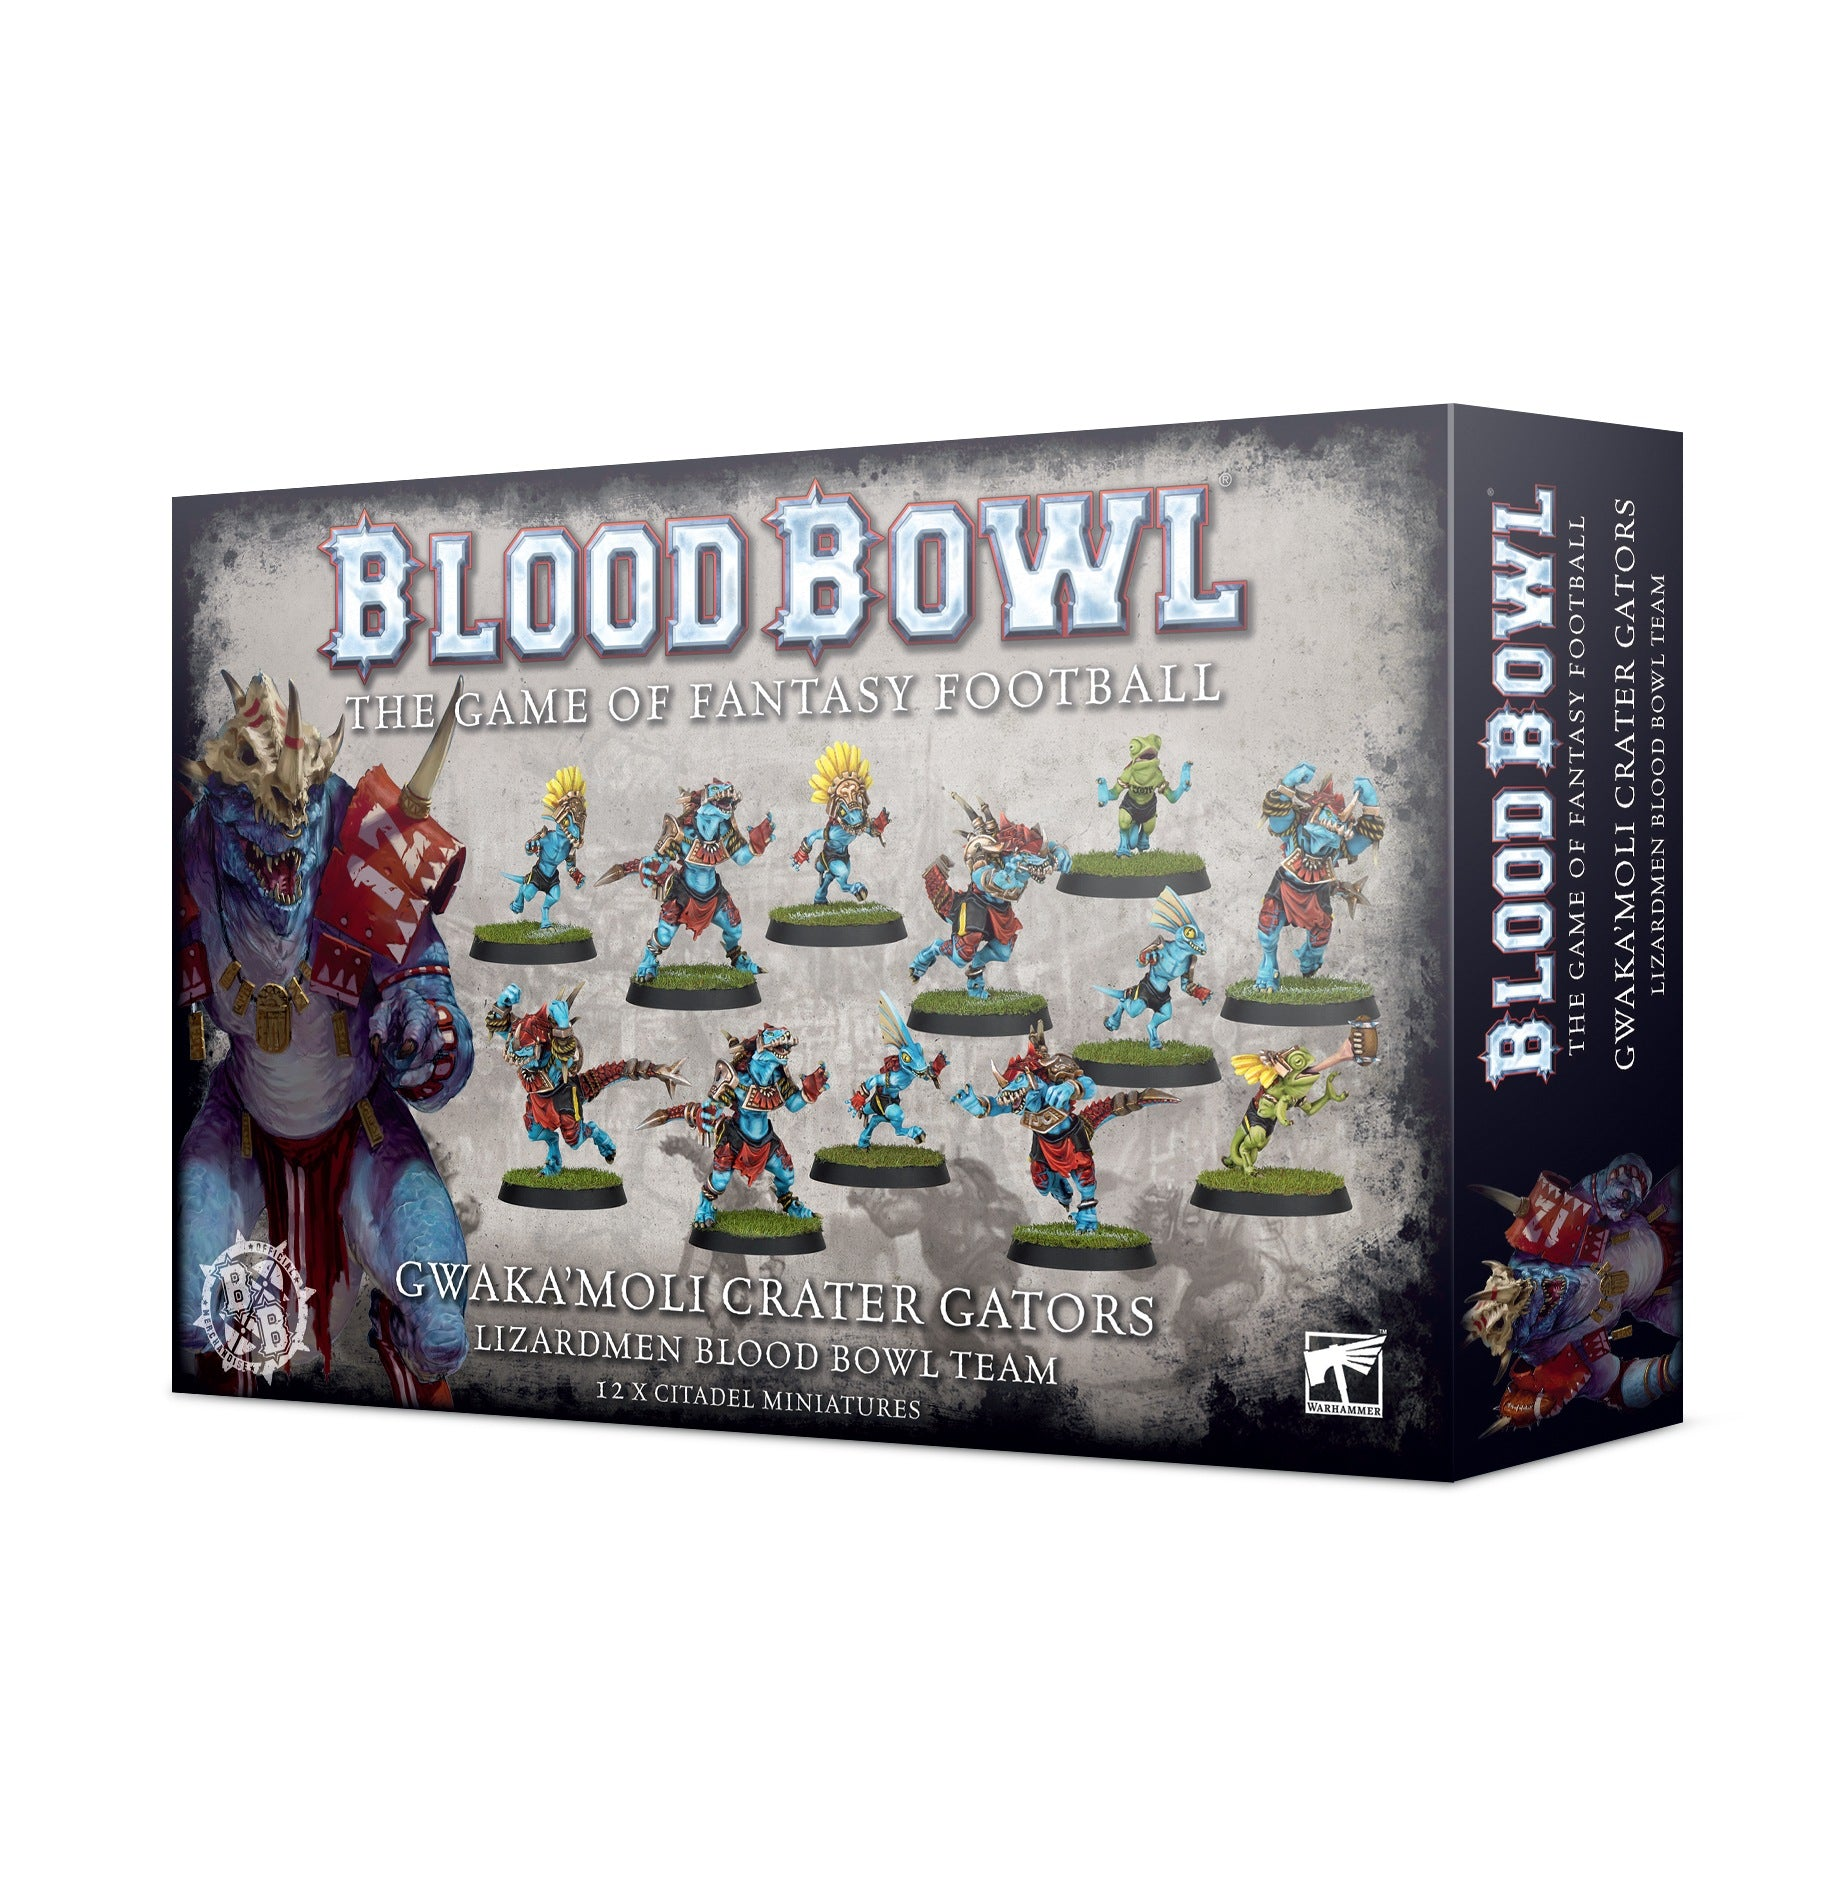 200-74 Blood Bowl: Gwaka'Moli Crater Gators | Misty Mountain Games